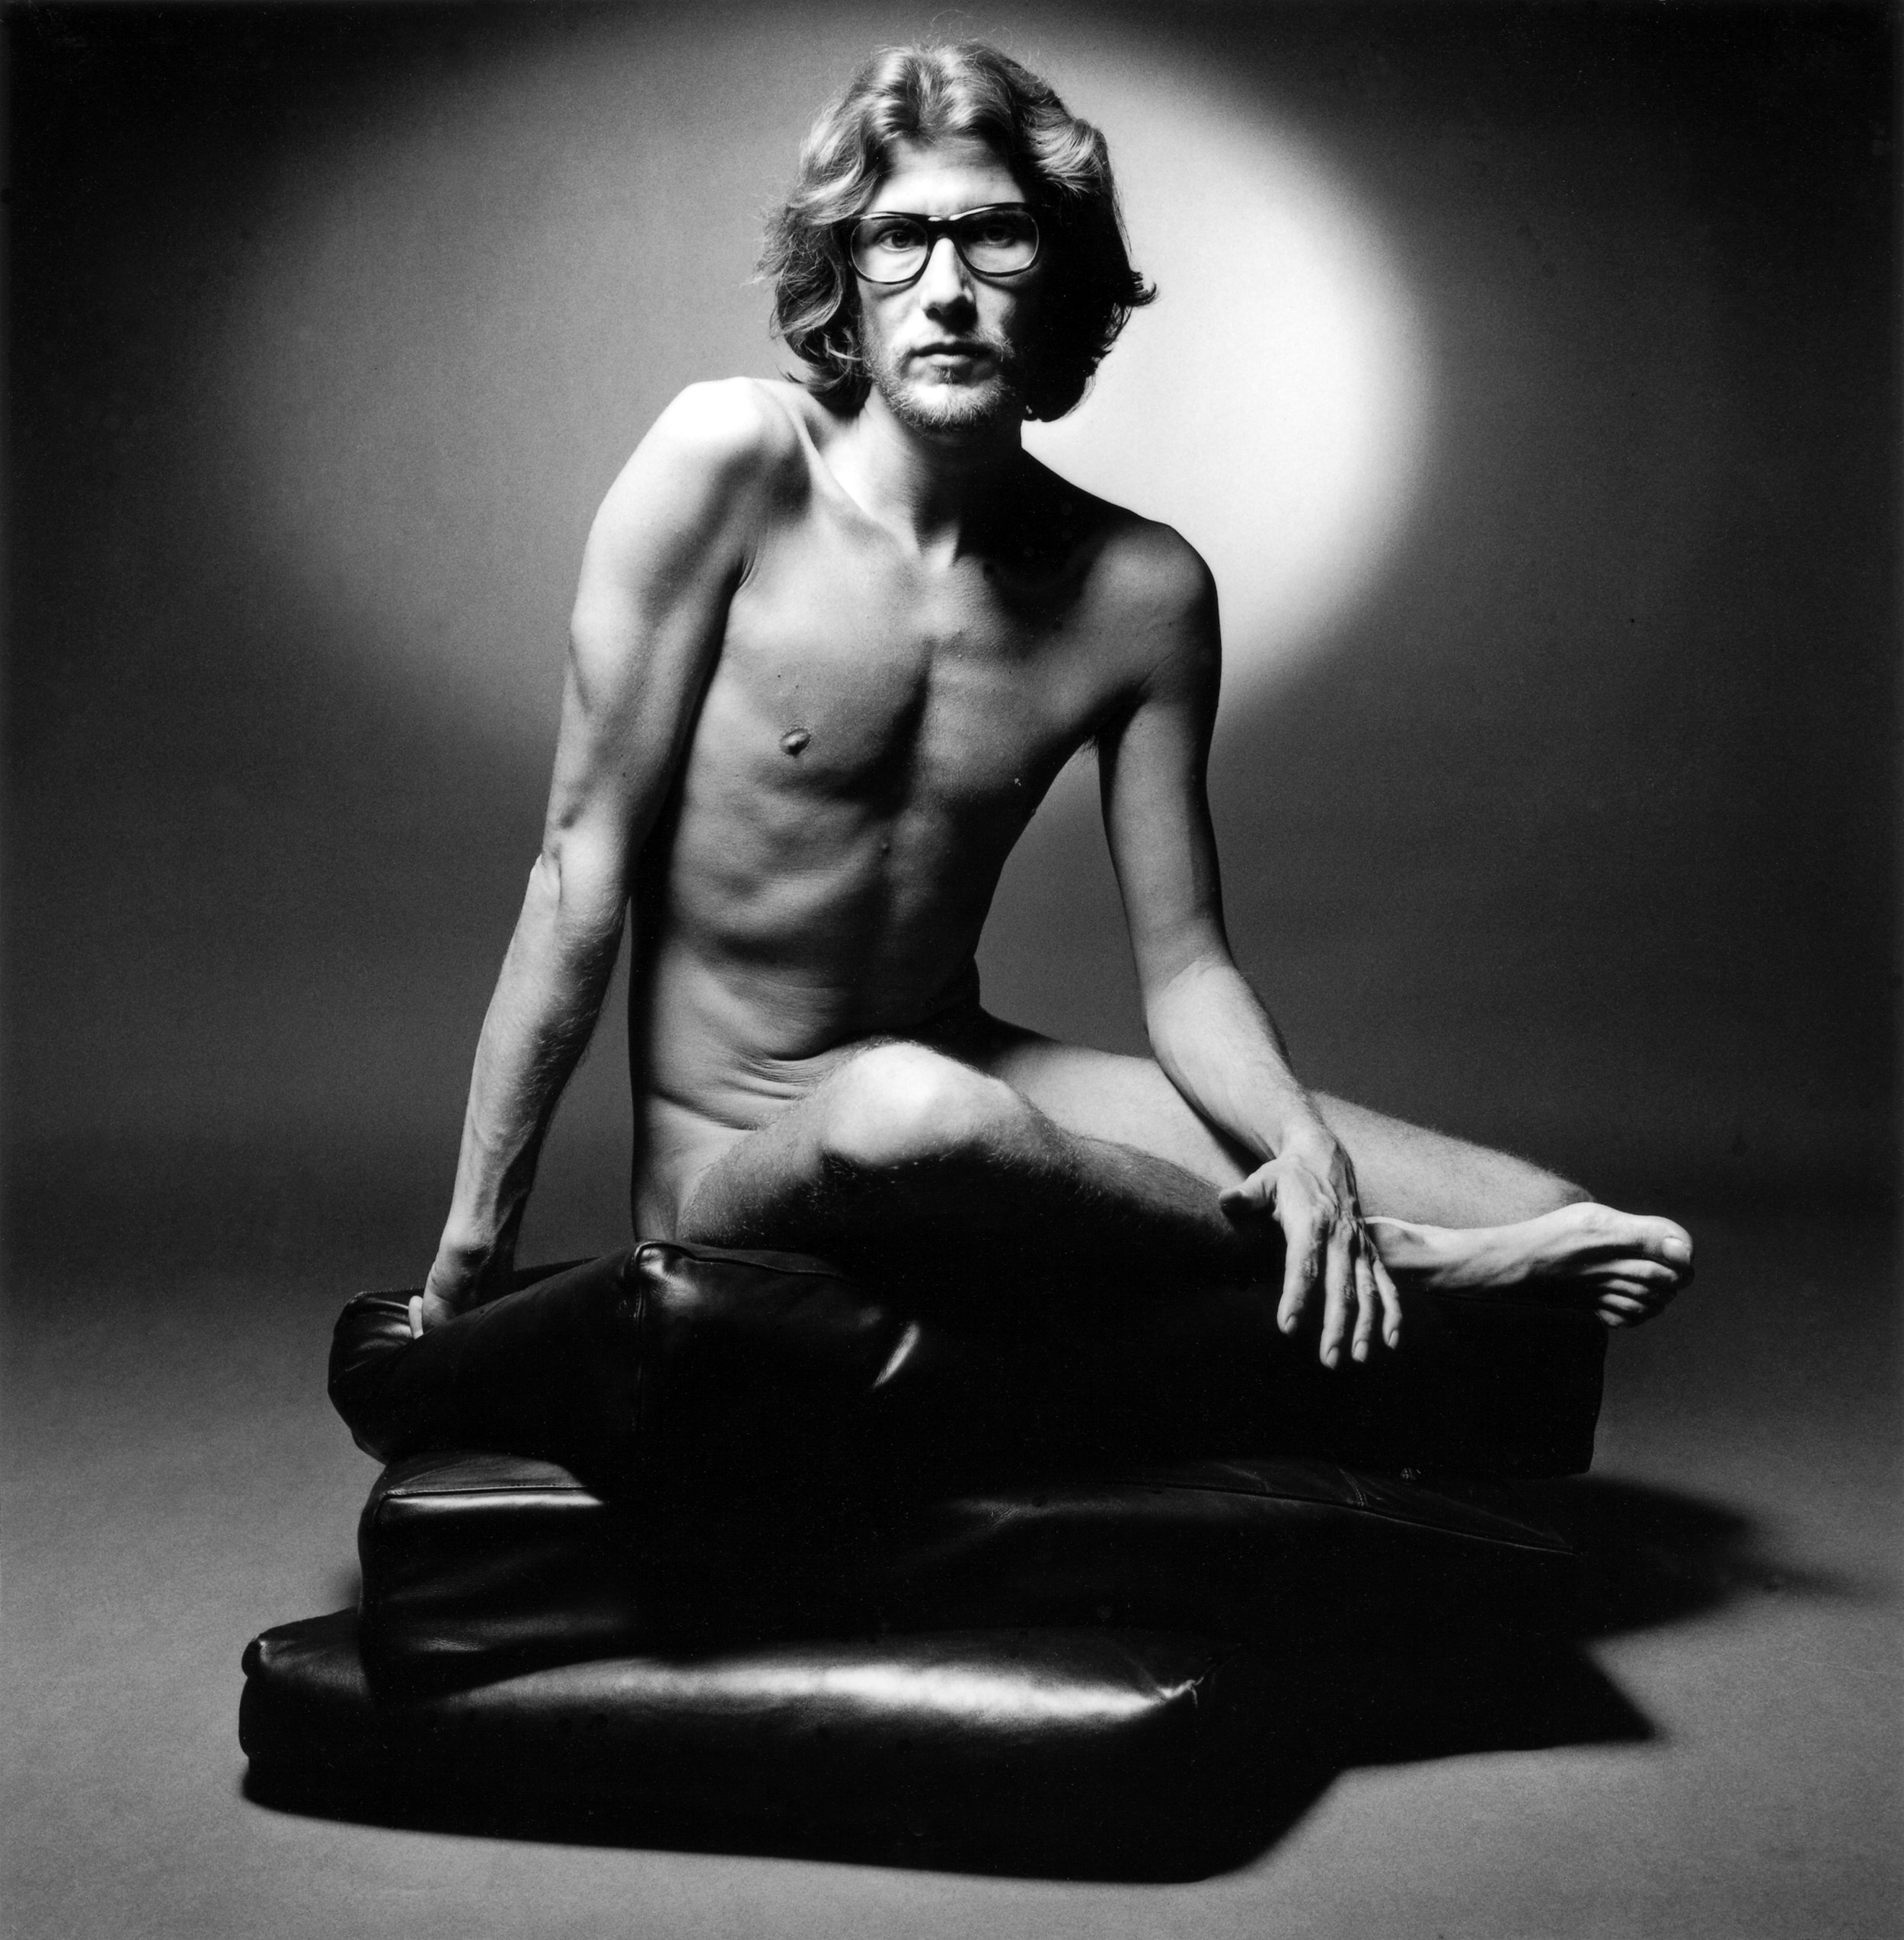 Yves Saint Laurent Pour Homme Nude by Jean Loup Sieff